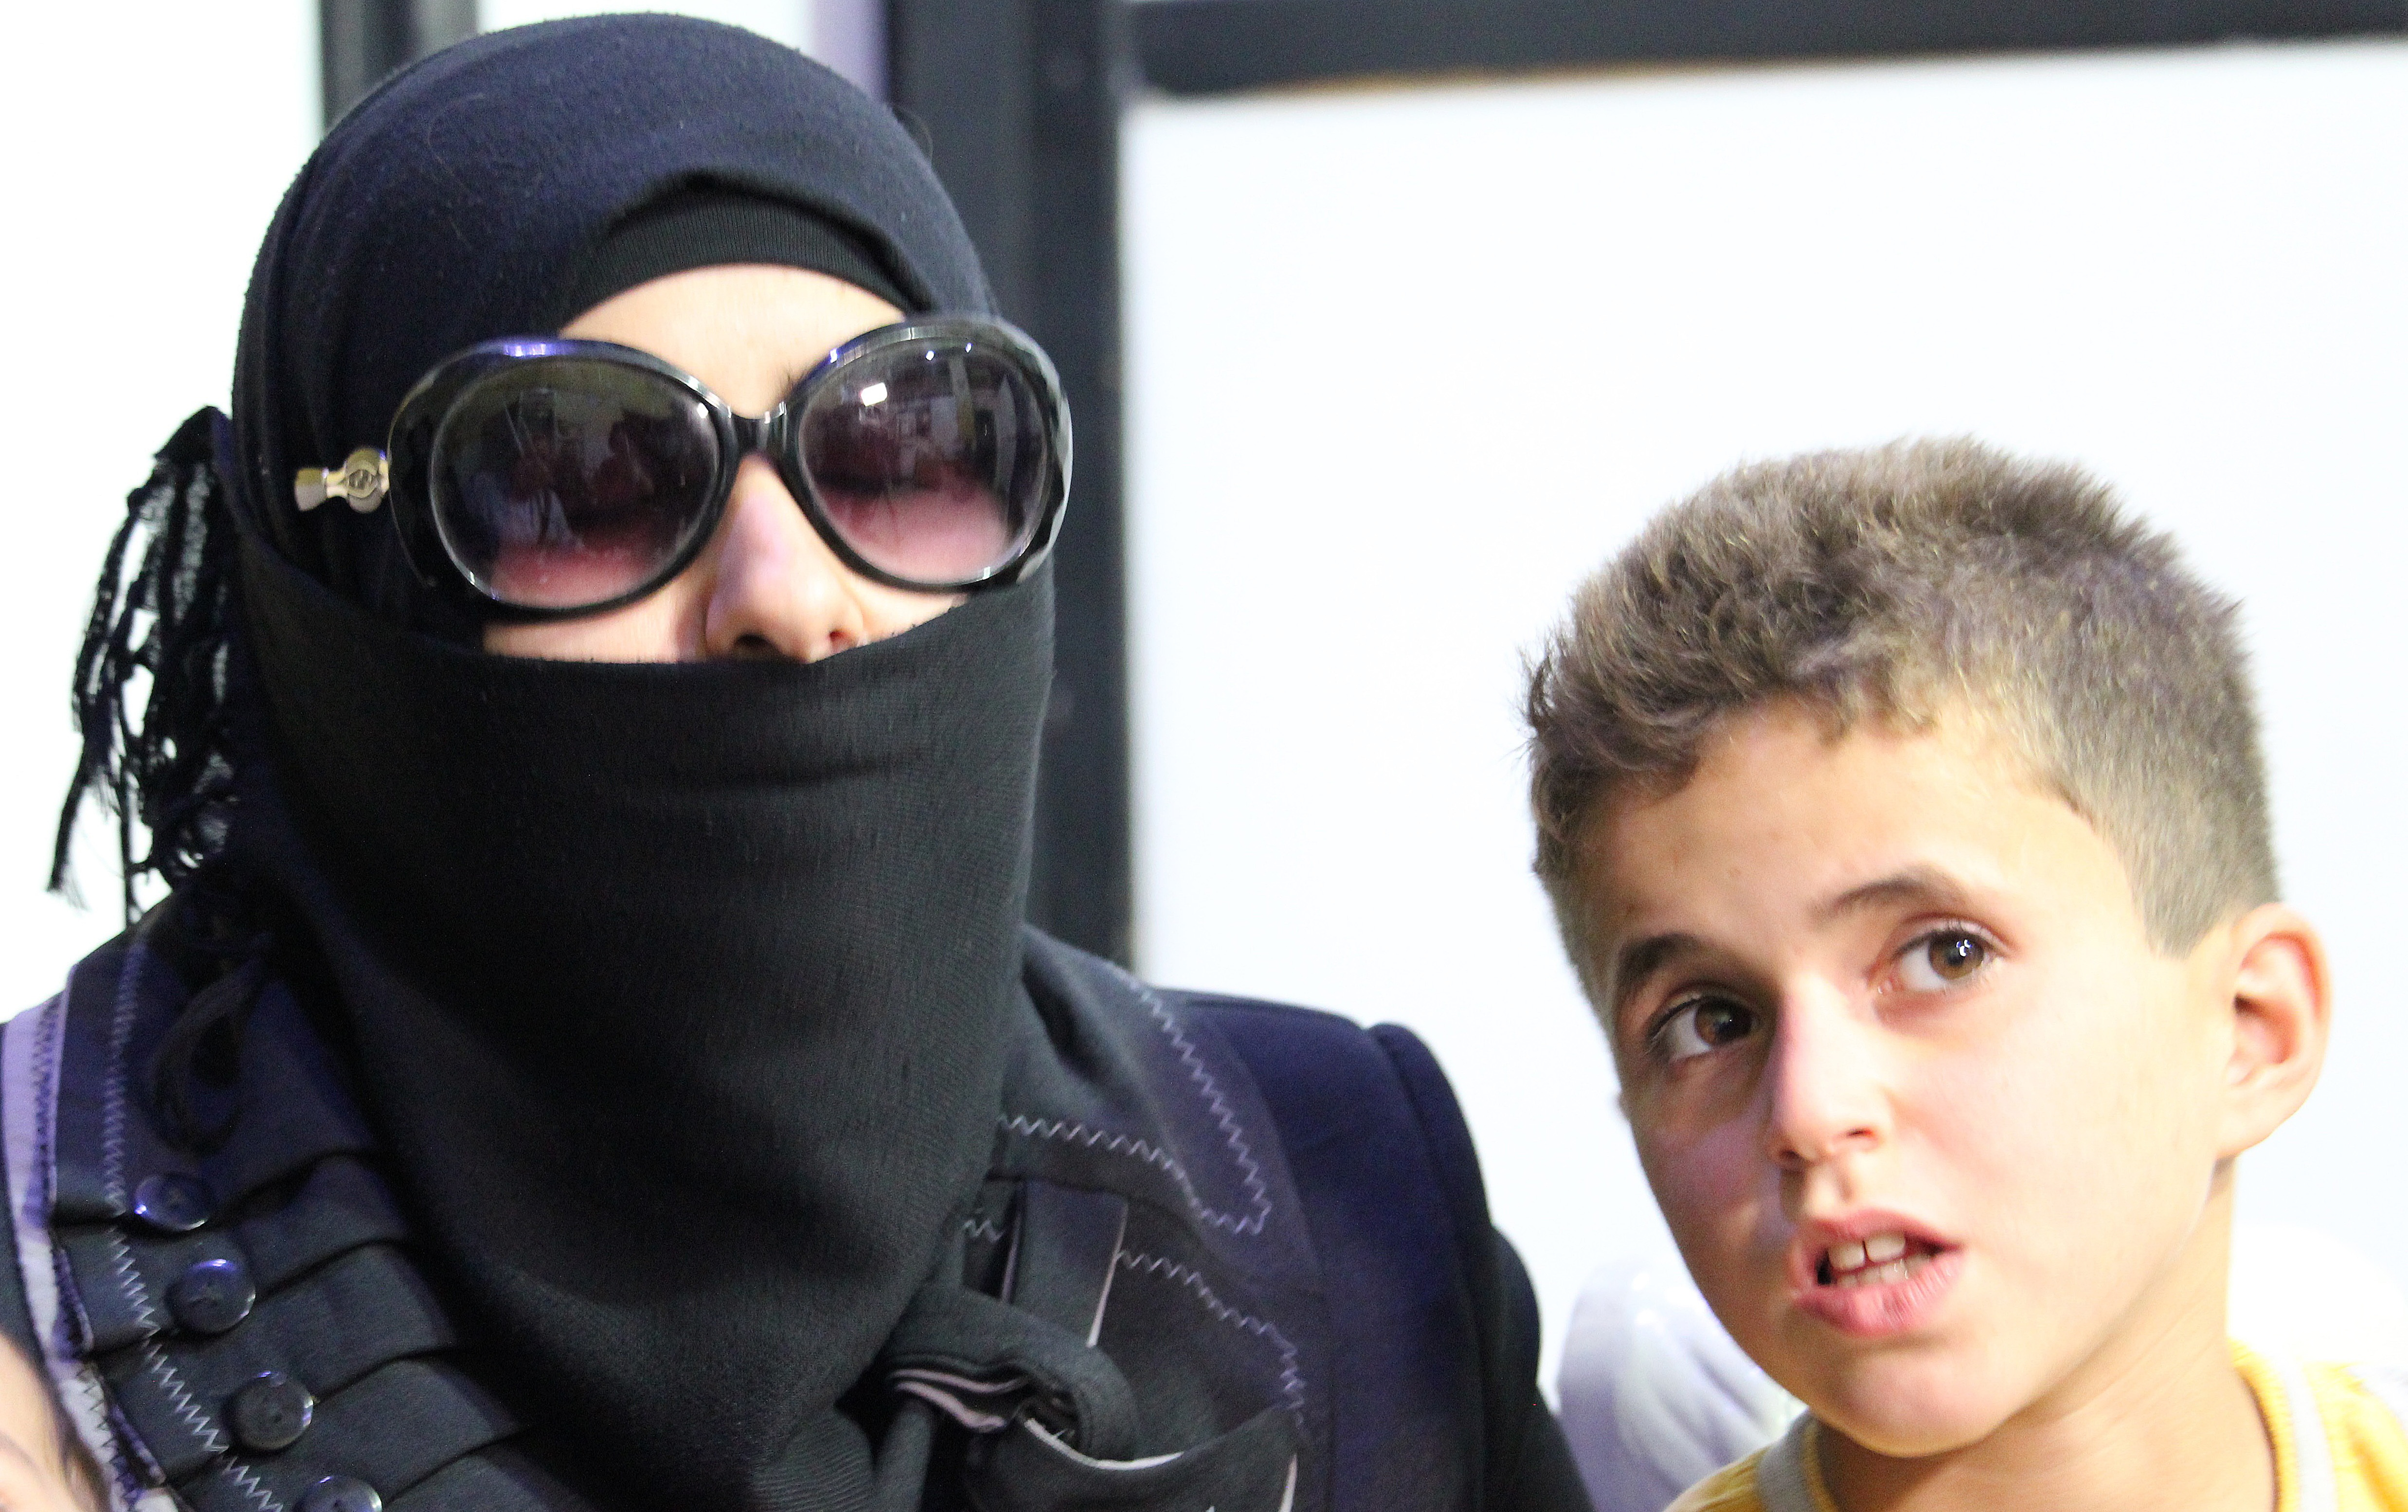 Rasoon Masmoud says her son Rateb, 10, has lacked good nutrition for so long that she is worried he has stopped growing. (Stephanie Jenzer/CBC)